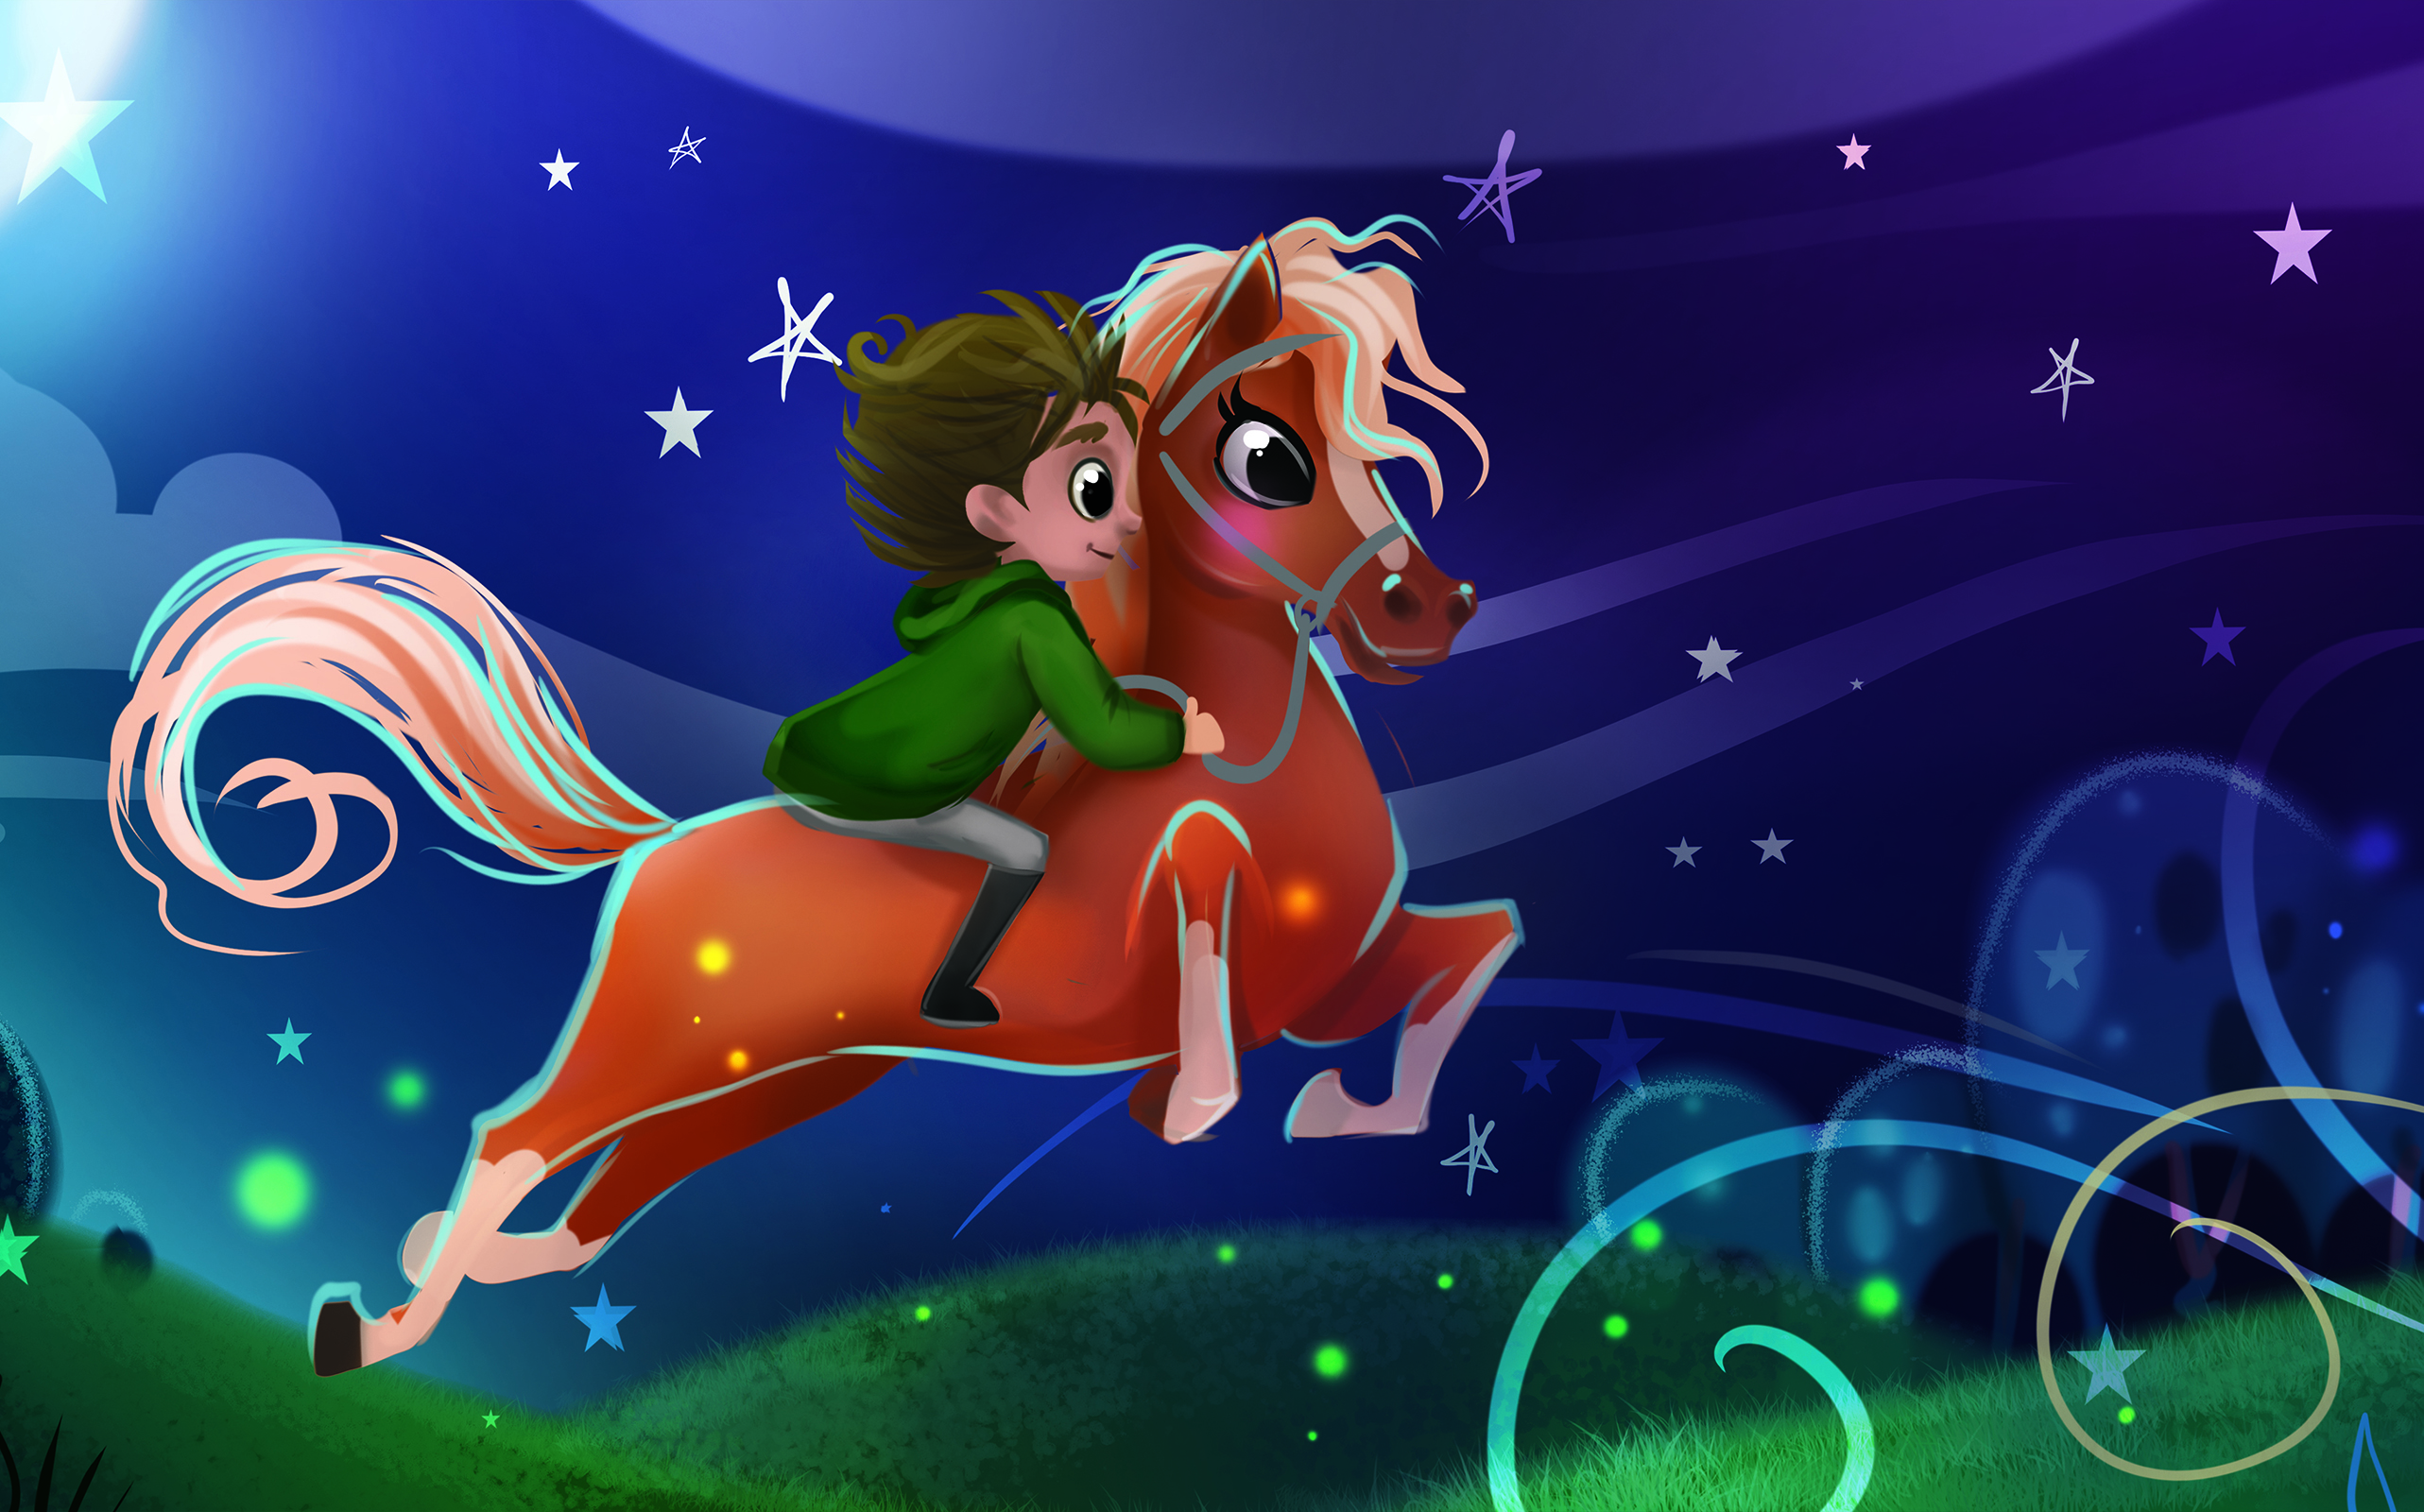 Boy flying gallop - My Secret Unicorn by The Kids Book Company